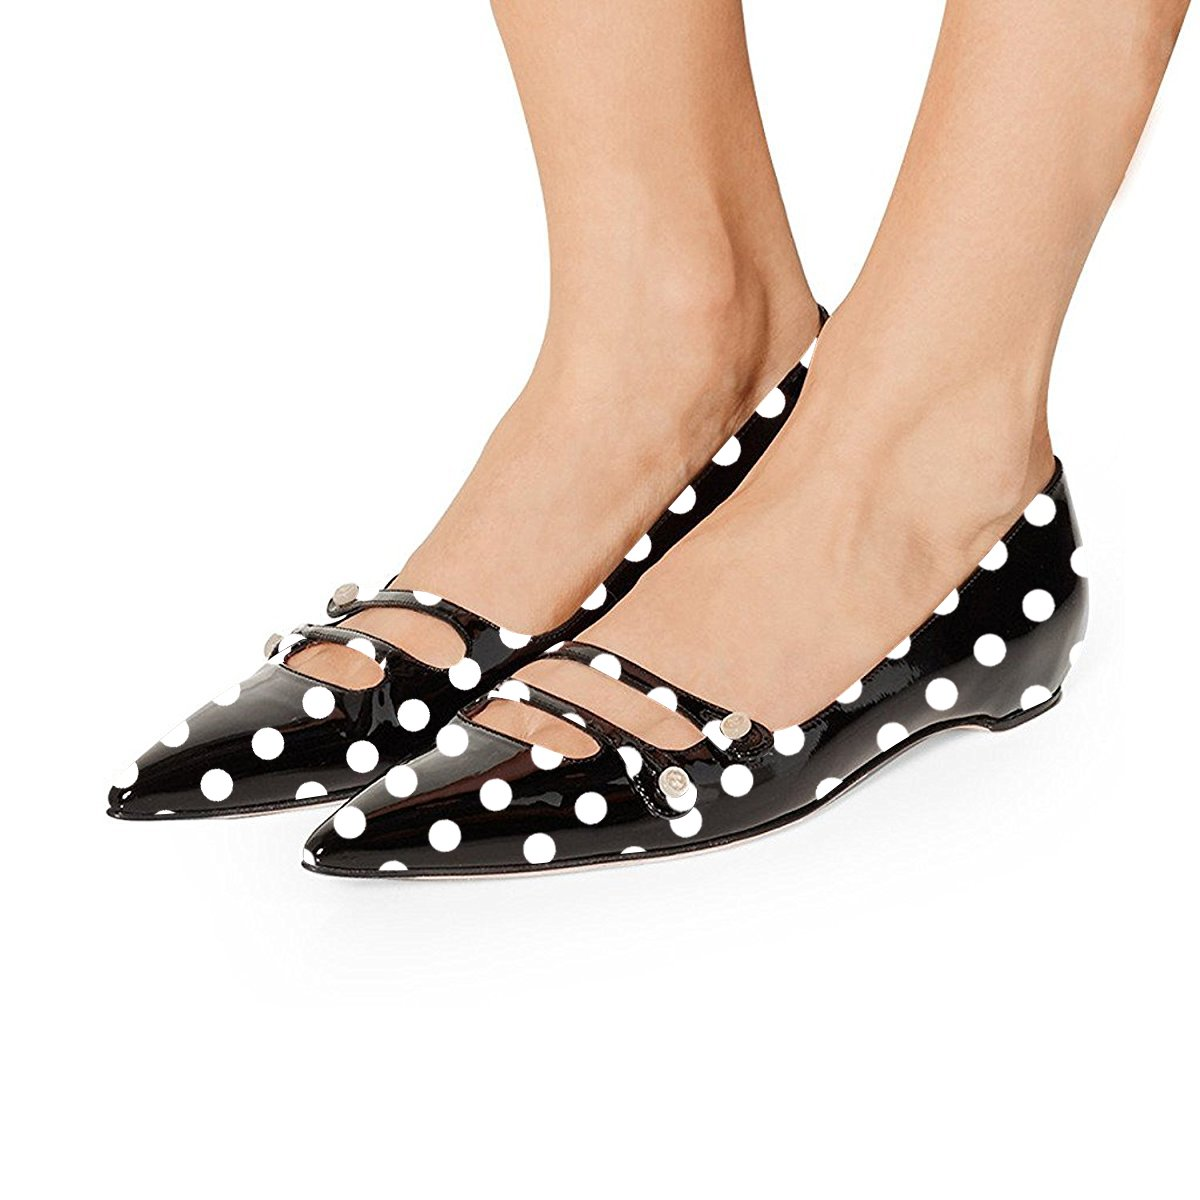 YDN Women Pointed Toe Slip on Flats Hidden Low Heels Pumps Comfort Shoes with Straps B07DKYNH69 9.5 M US|Black Polka Dot